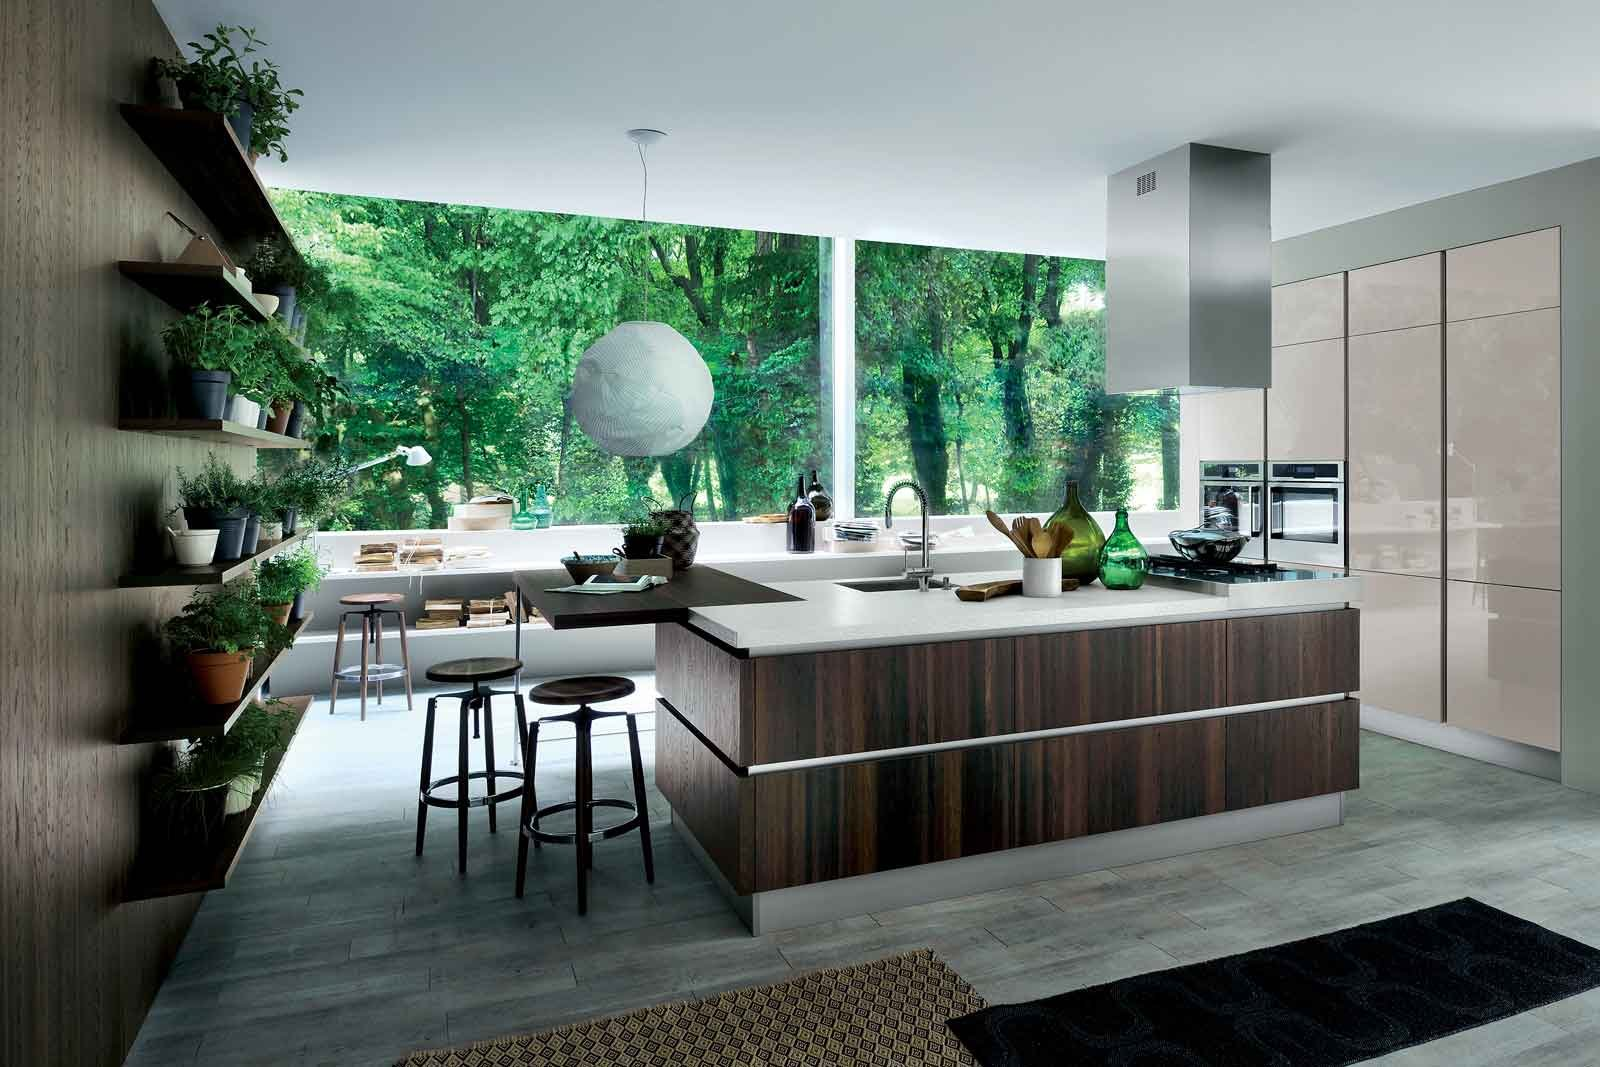 cucine con elementi a boiserie cose di casa. Black Bedroom Furniture Sets. Home Design Ideas